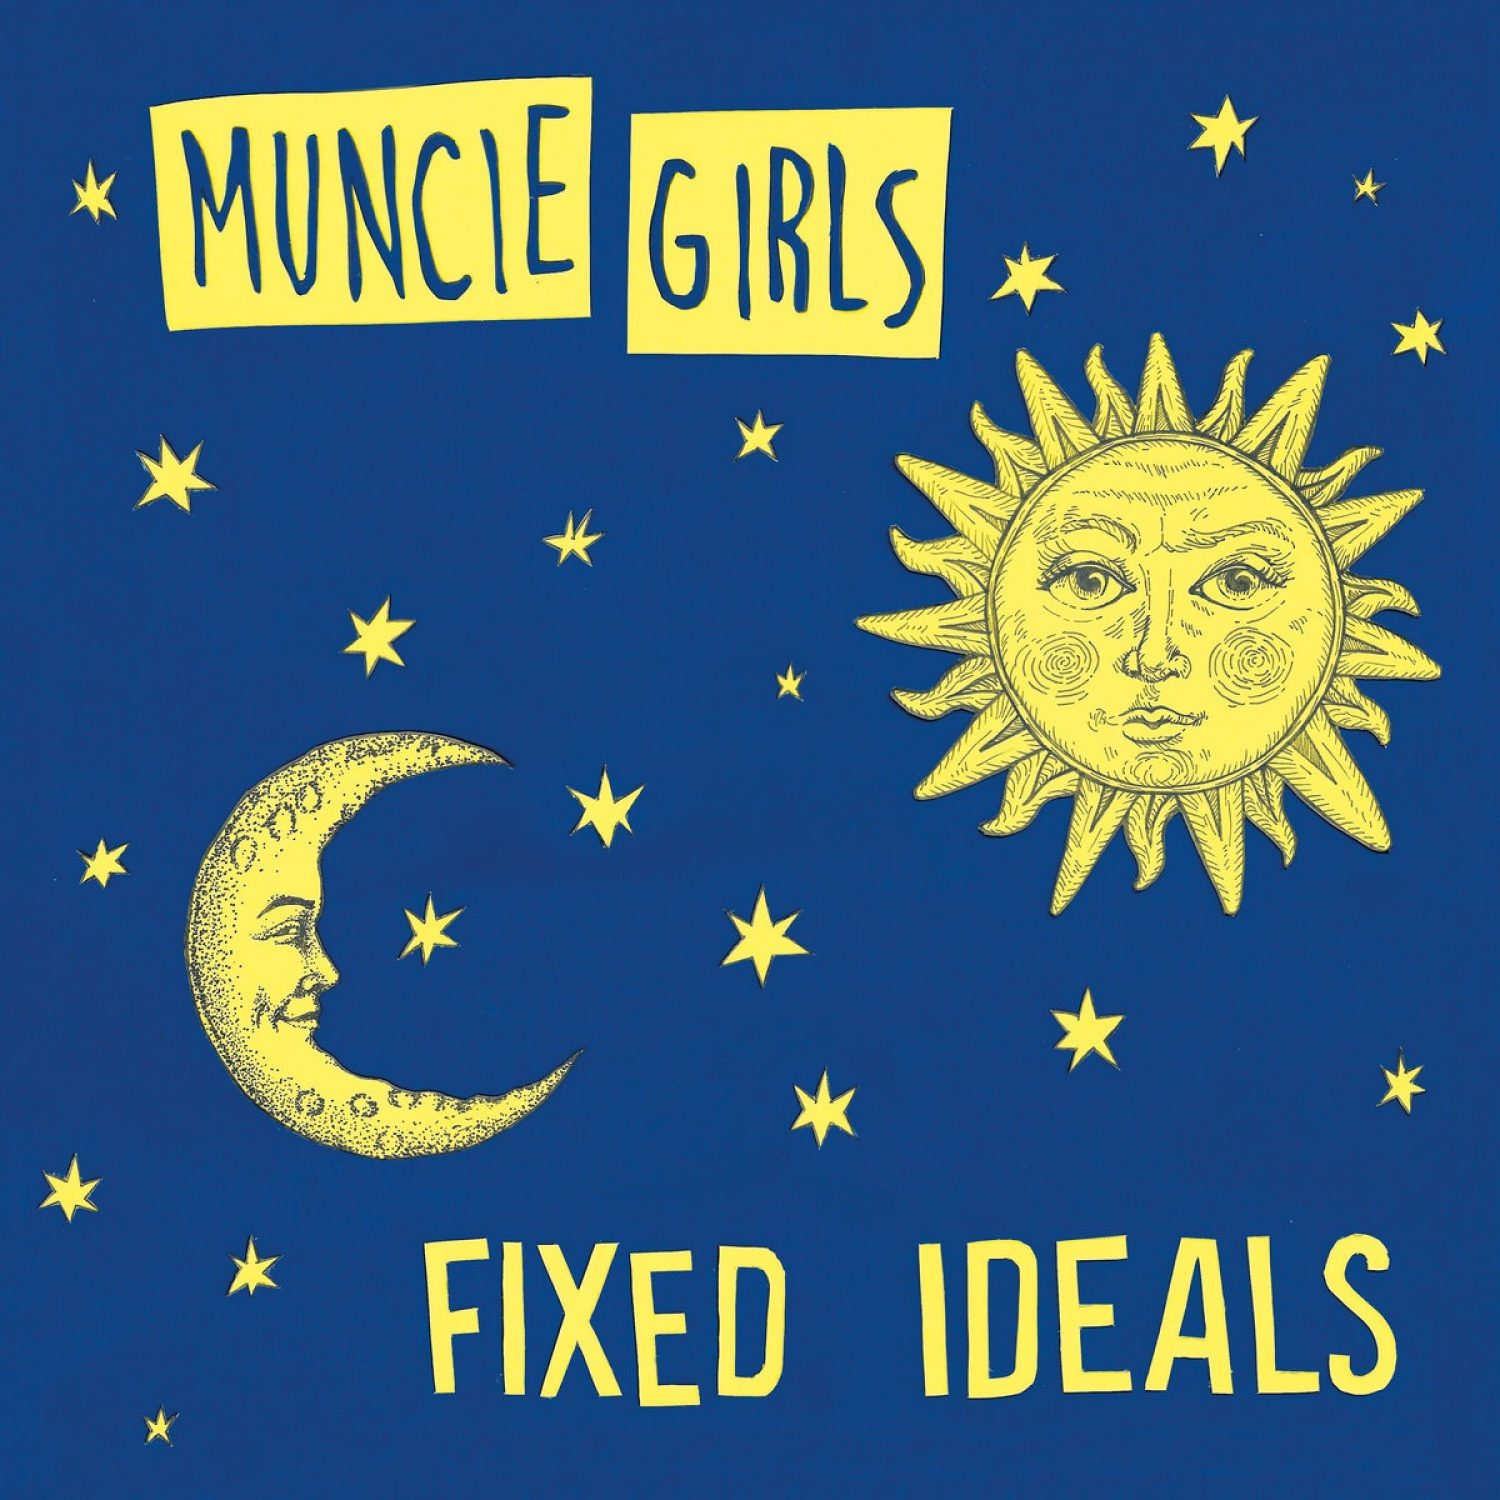 Here are some things Muncie Girls want you to know about their new album, 'Fixed Ideals'